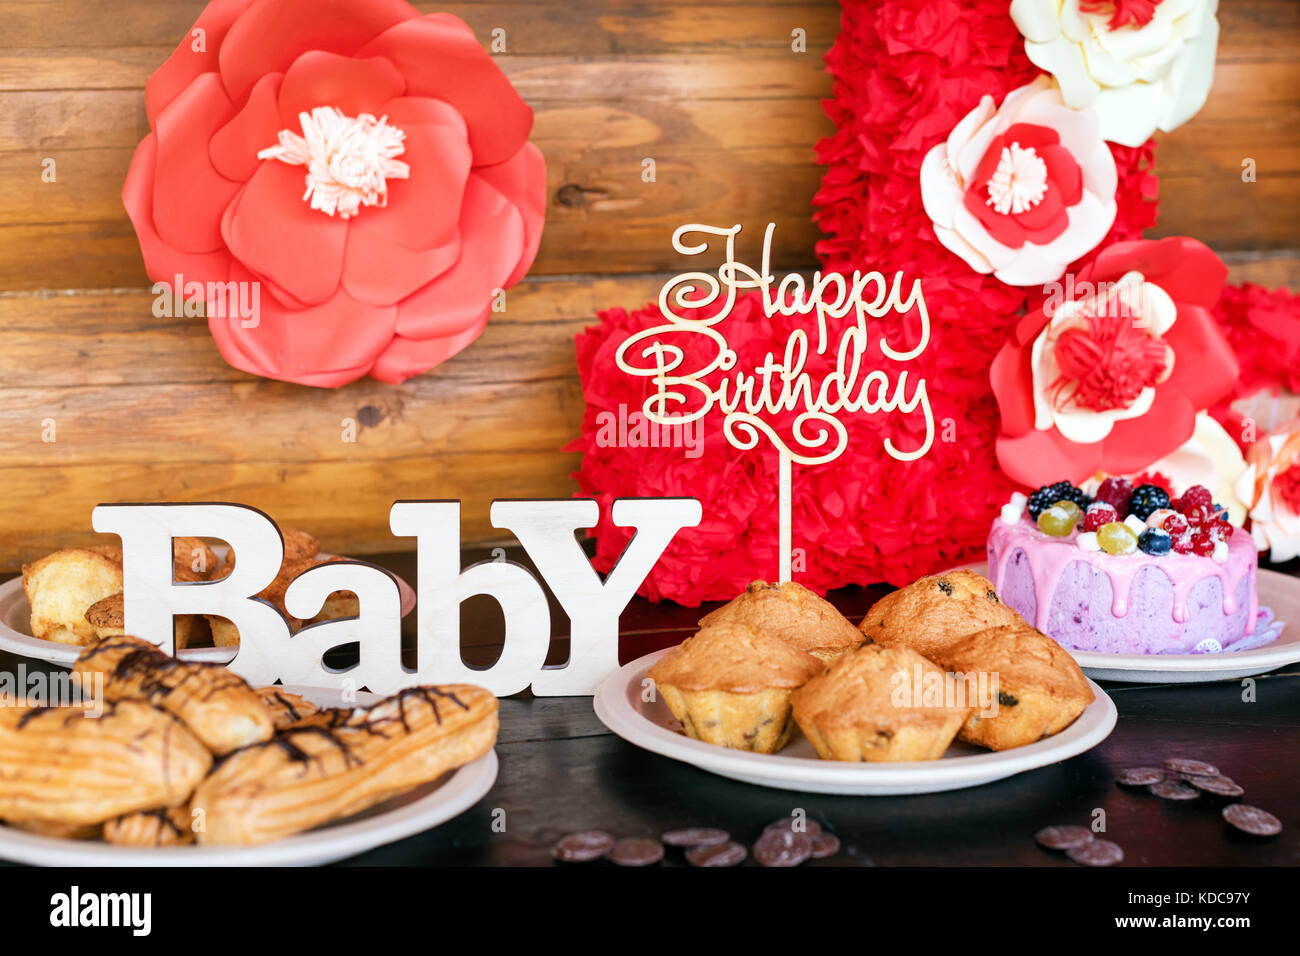 Birthday Cakes And Muffins With Wooden Greeting Signs On Rustic Background Sing Letters Happy Baby Holiday Sweets